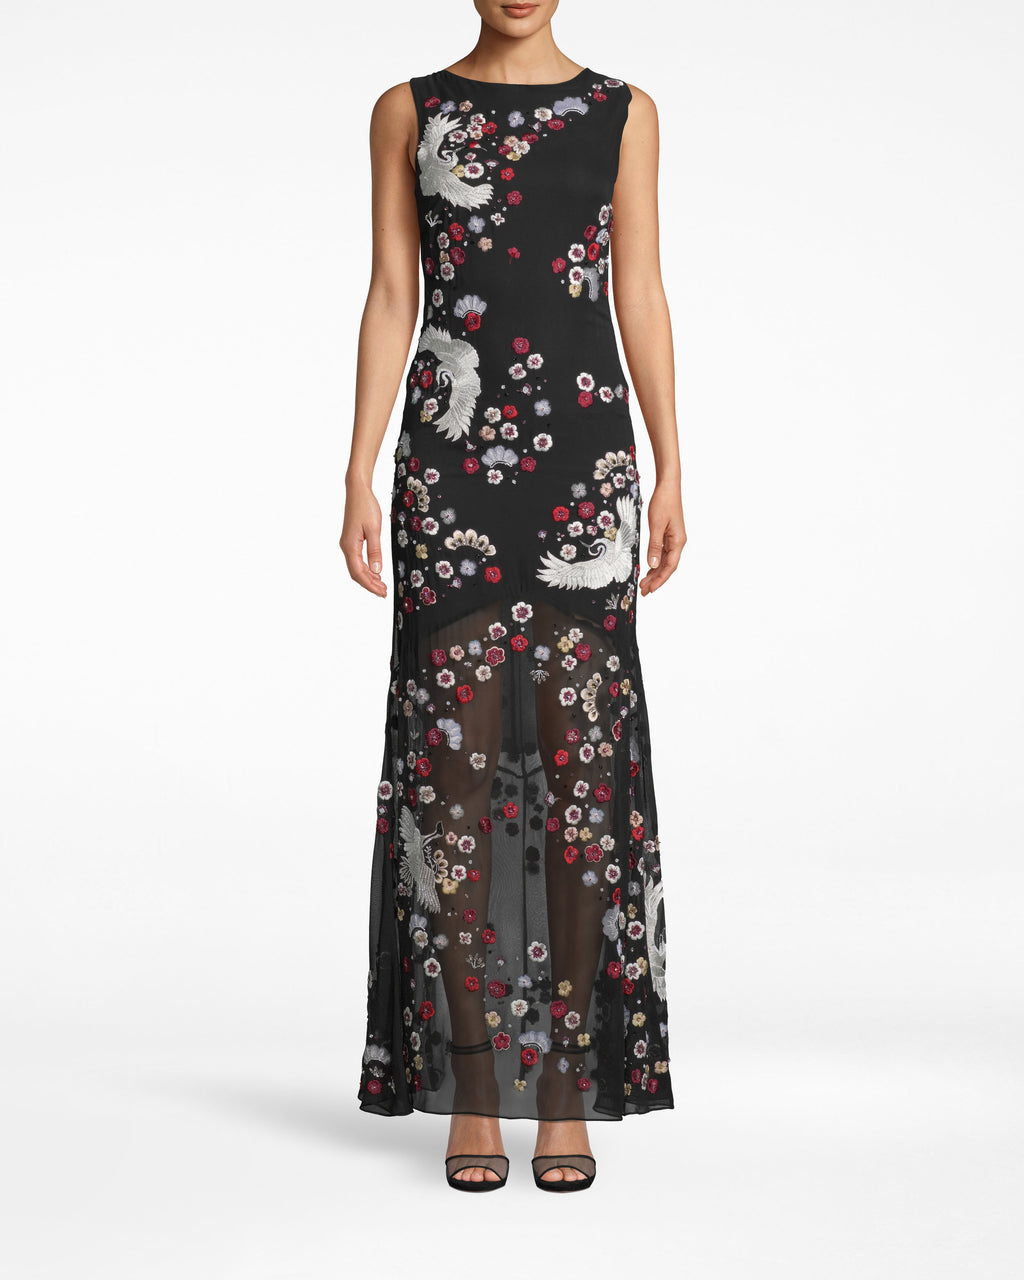 FJ10037 - CRANE AND CHERRY BLOSSOM GOWN - dresses - long - DELICATE BEADING AND EMBROIDERY DECORATE THIS STRIKING GOWN. PAIR WITH SIMPLE ACCESSORIES FOR A STANDOUT MOMENT. MOSTLY LINED WITH A SHEER BOTTOM.